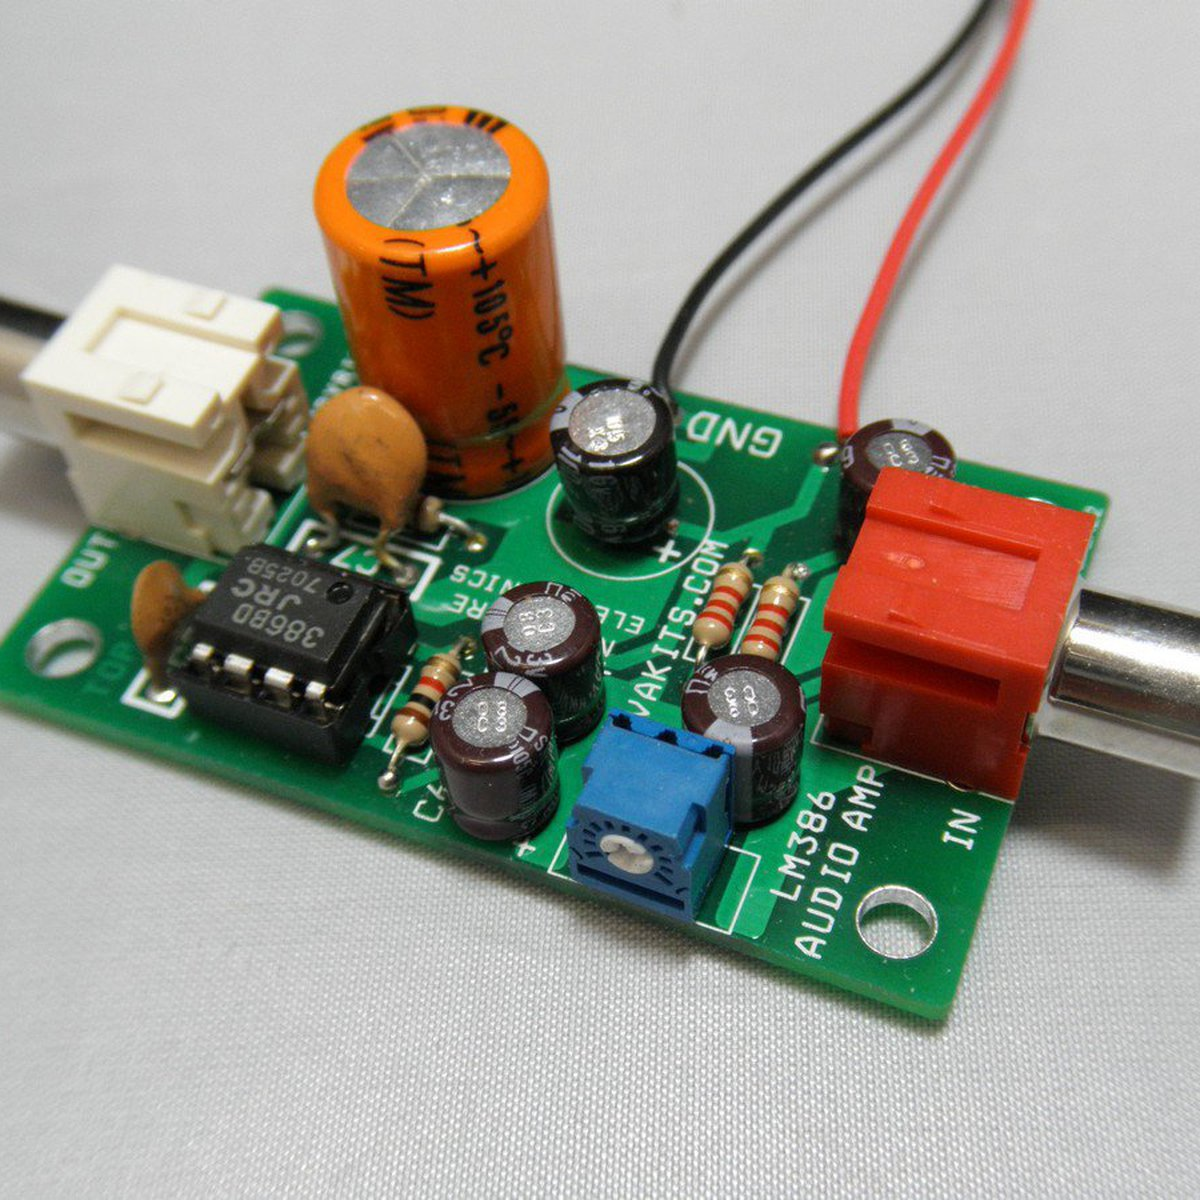 Electret Microphone Amplifier Kit 1695 Em From Nightfire Audioamp Board The Features A Power Lm386 Electronics Llc On Tindie